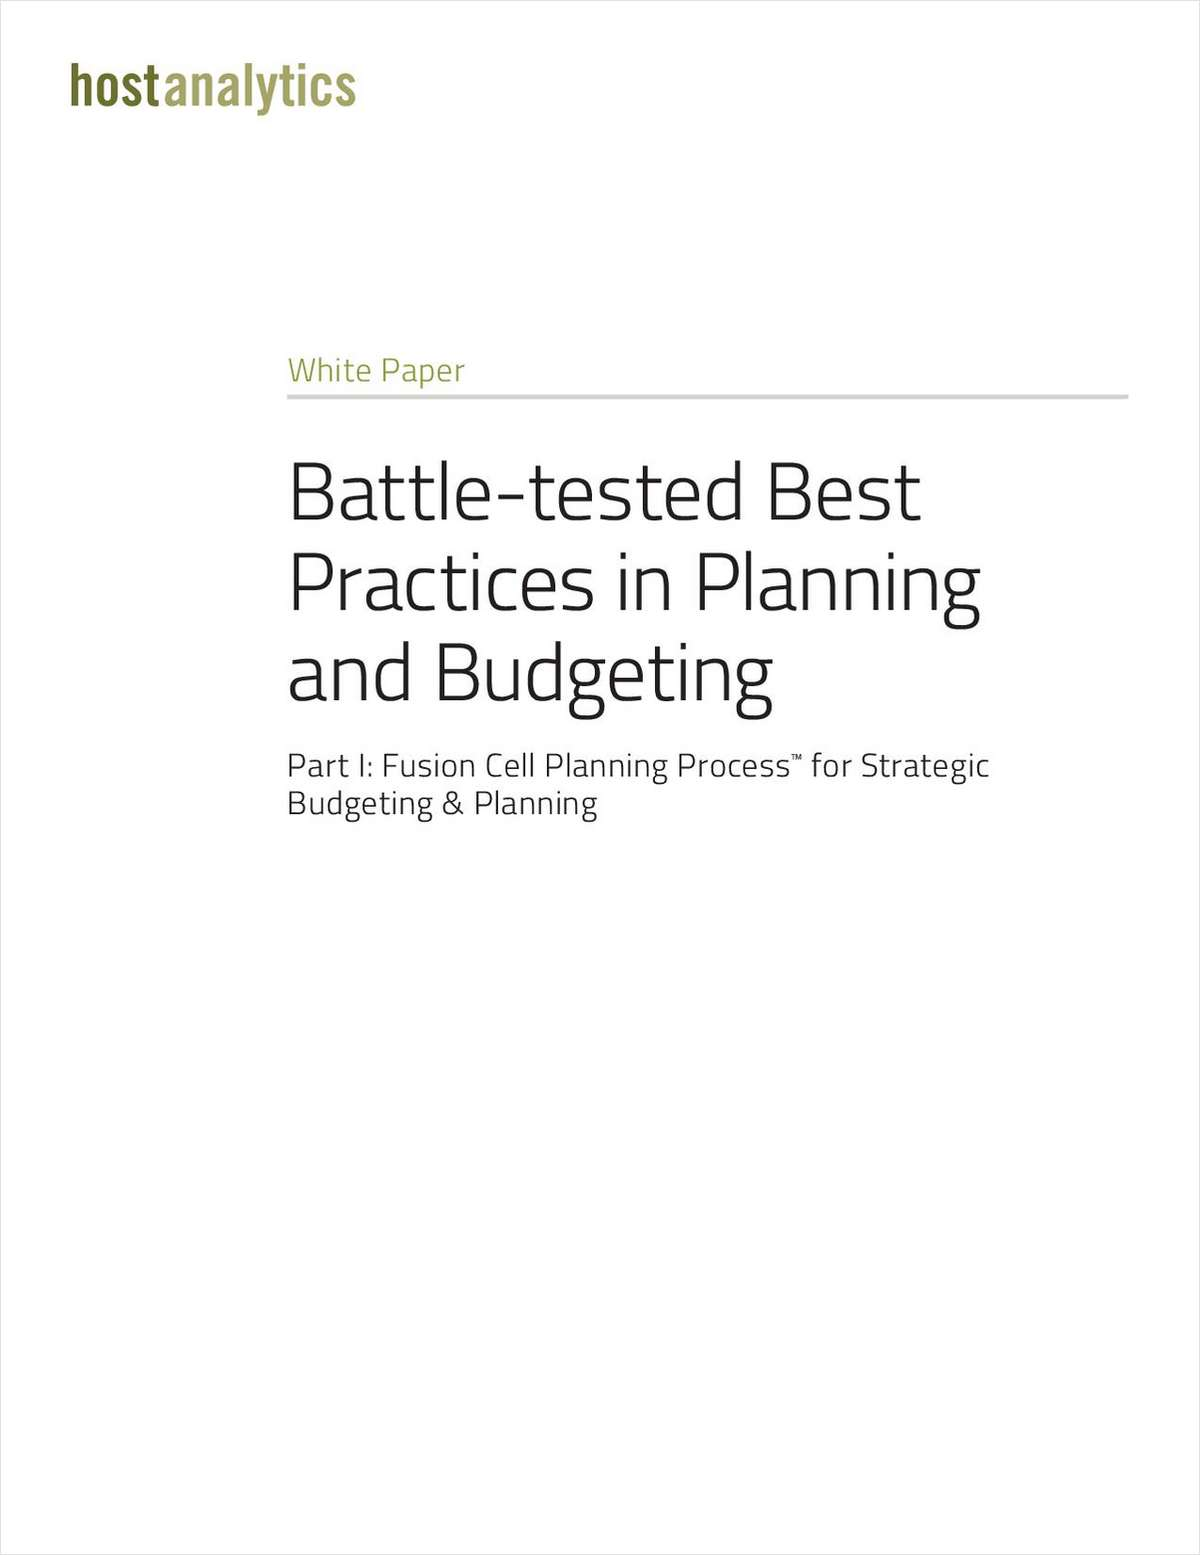 Battle-Tested Best Practices in Planning and Budgeting Parts 1&2